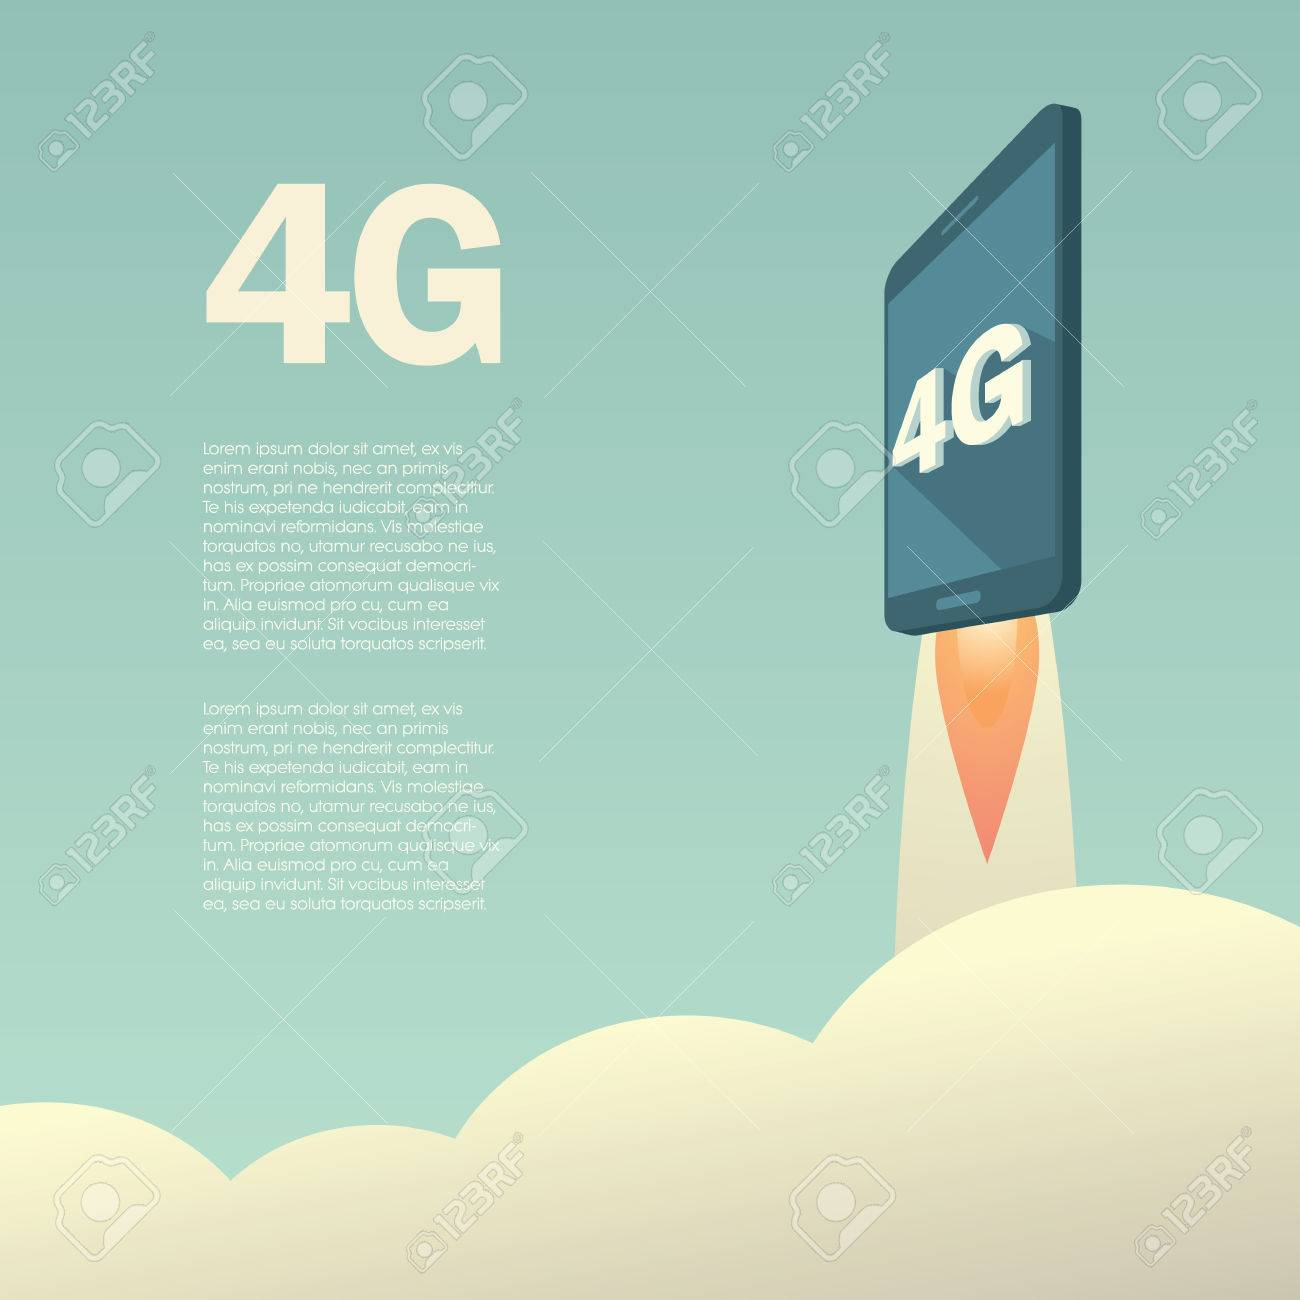 4g or lte presentation poster template with smartphone flying